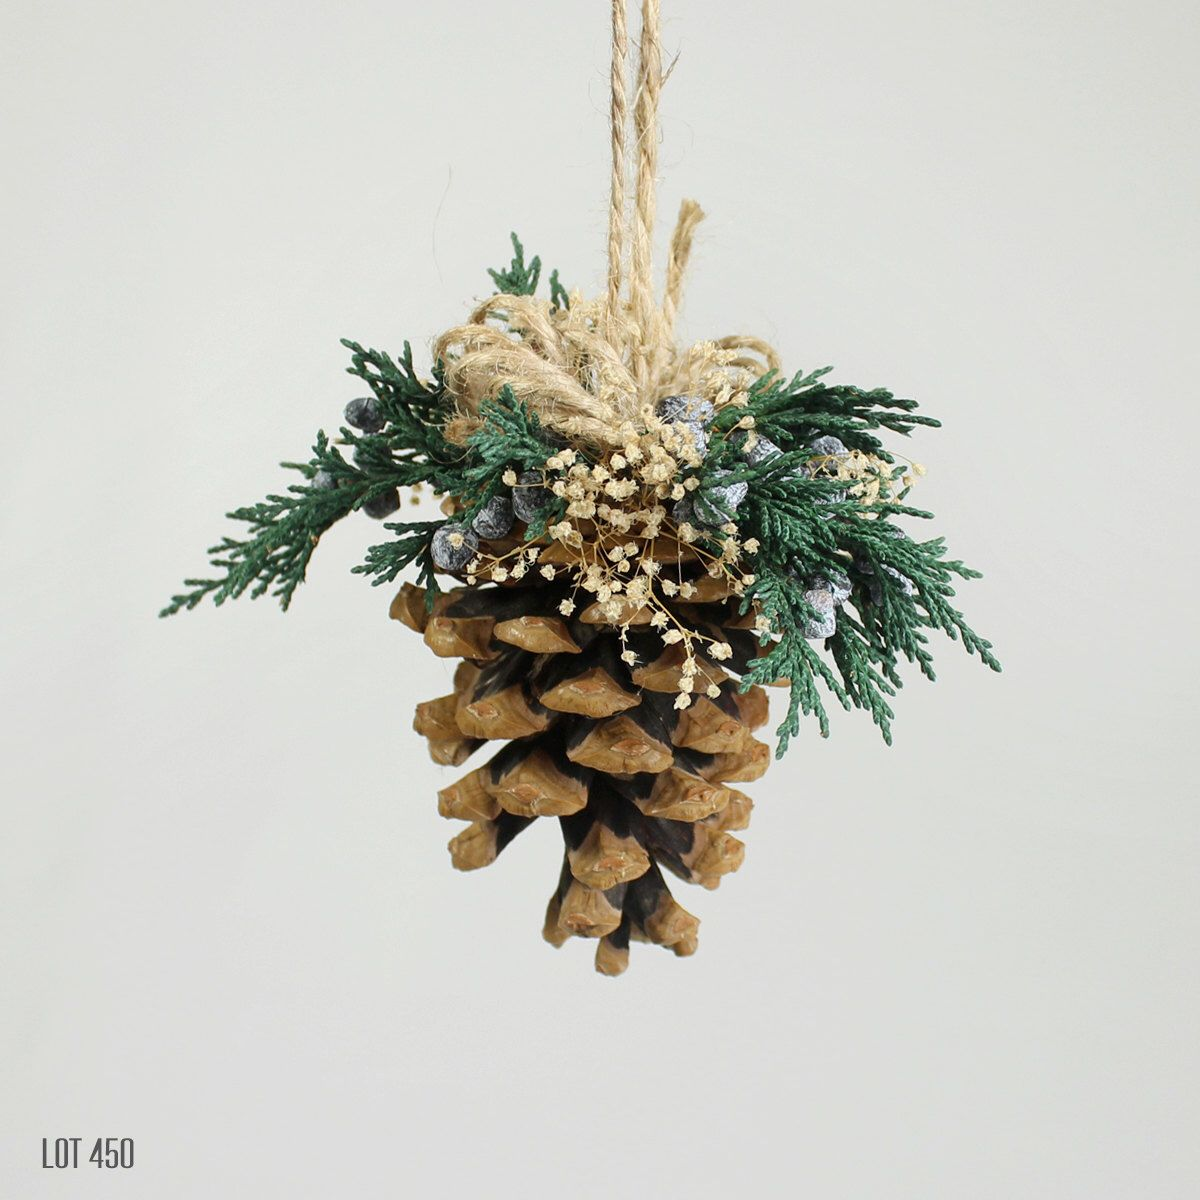 Christmas Decorations Christmas Tree Ornament Pine Cone Ornament Natural Rustic Woodland Holiday Decor Preserved Evergreens Dry Flower Woodland Christmas Tree Pine Cone Christmas Tree Farmhouse Christmas Ornaments